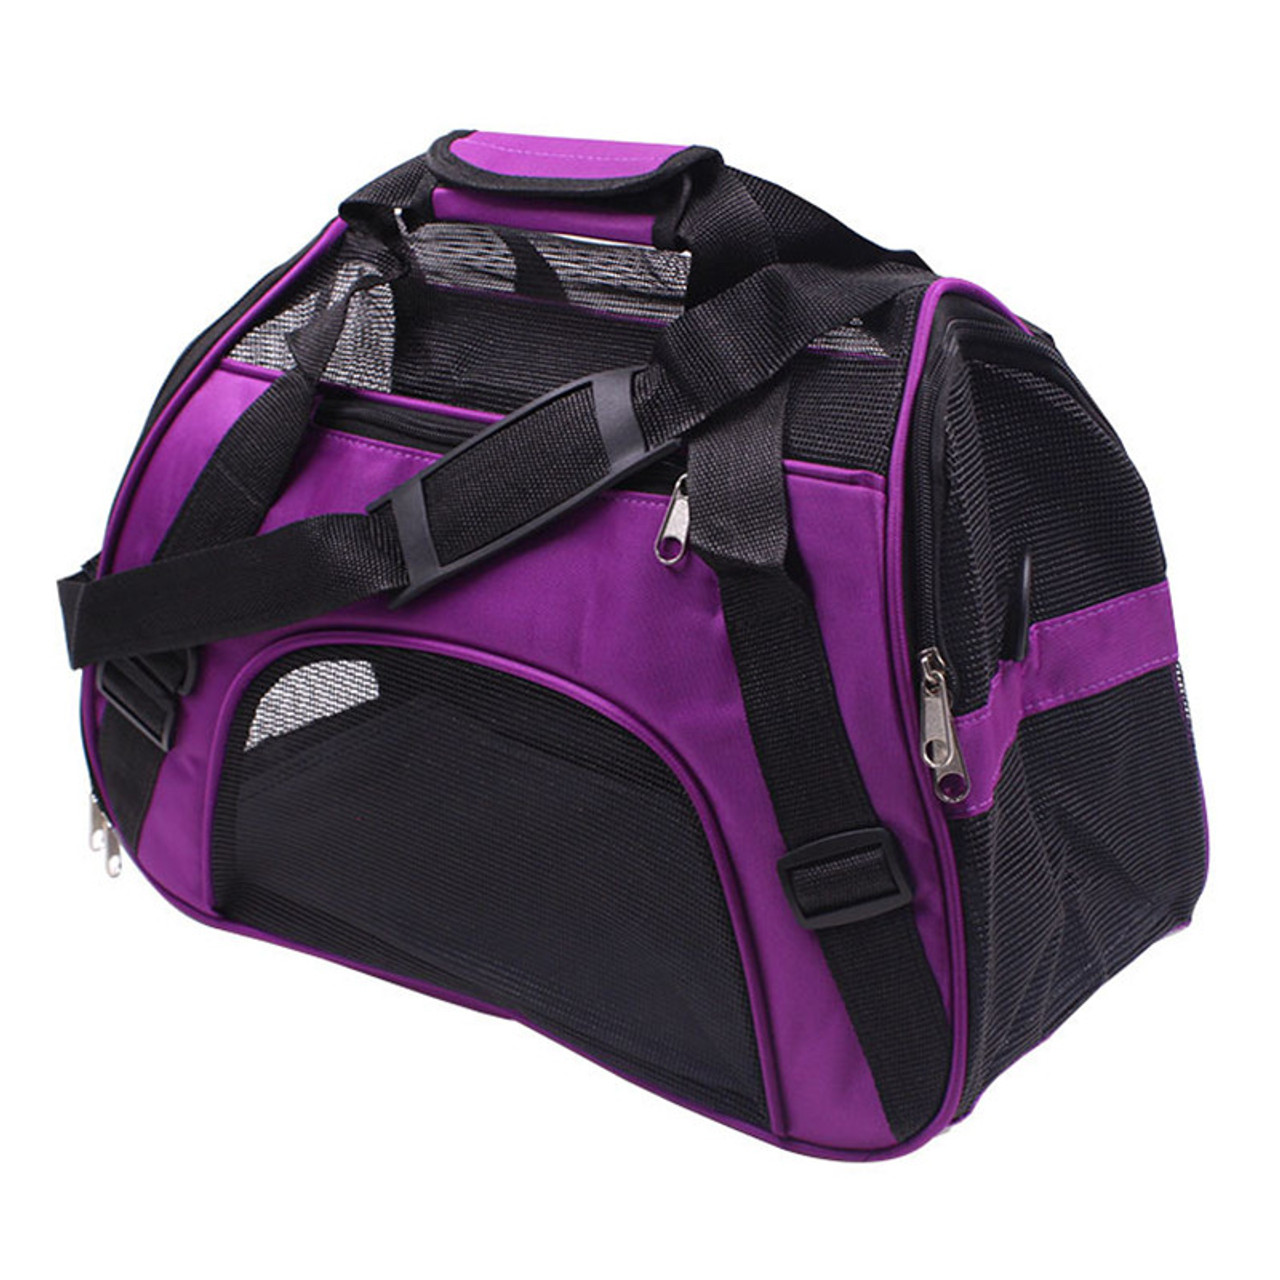 fcf4b72bcbb Dog Carrier Outgoing Travel Teddy Packets Breathable Small Pet Handbag